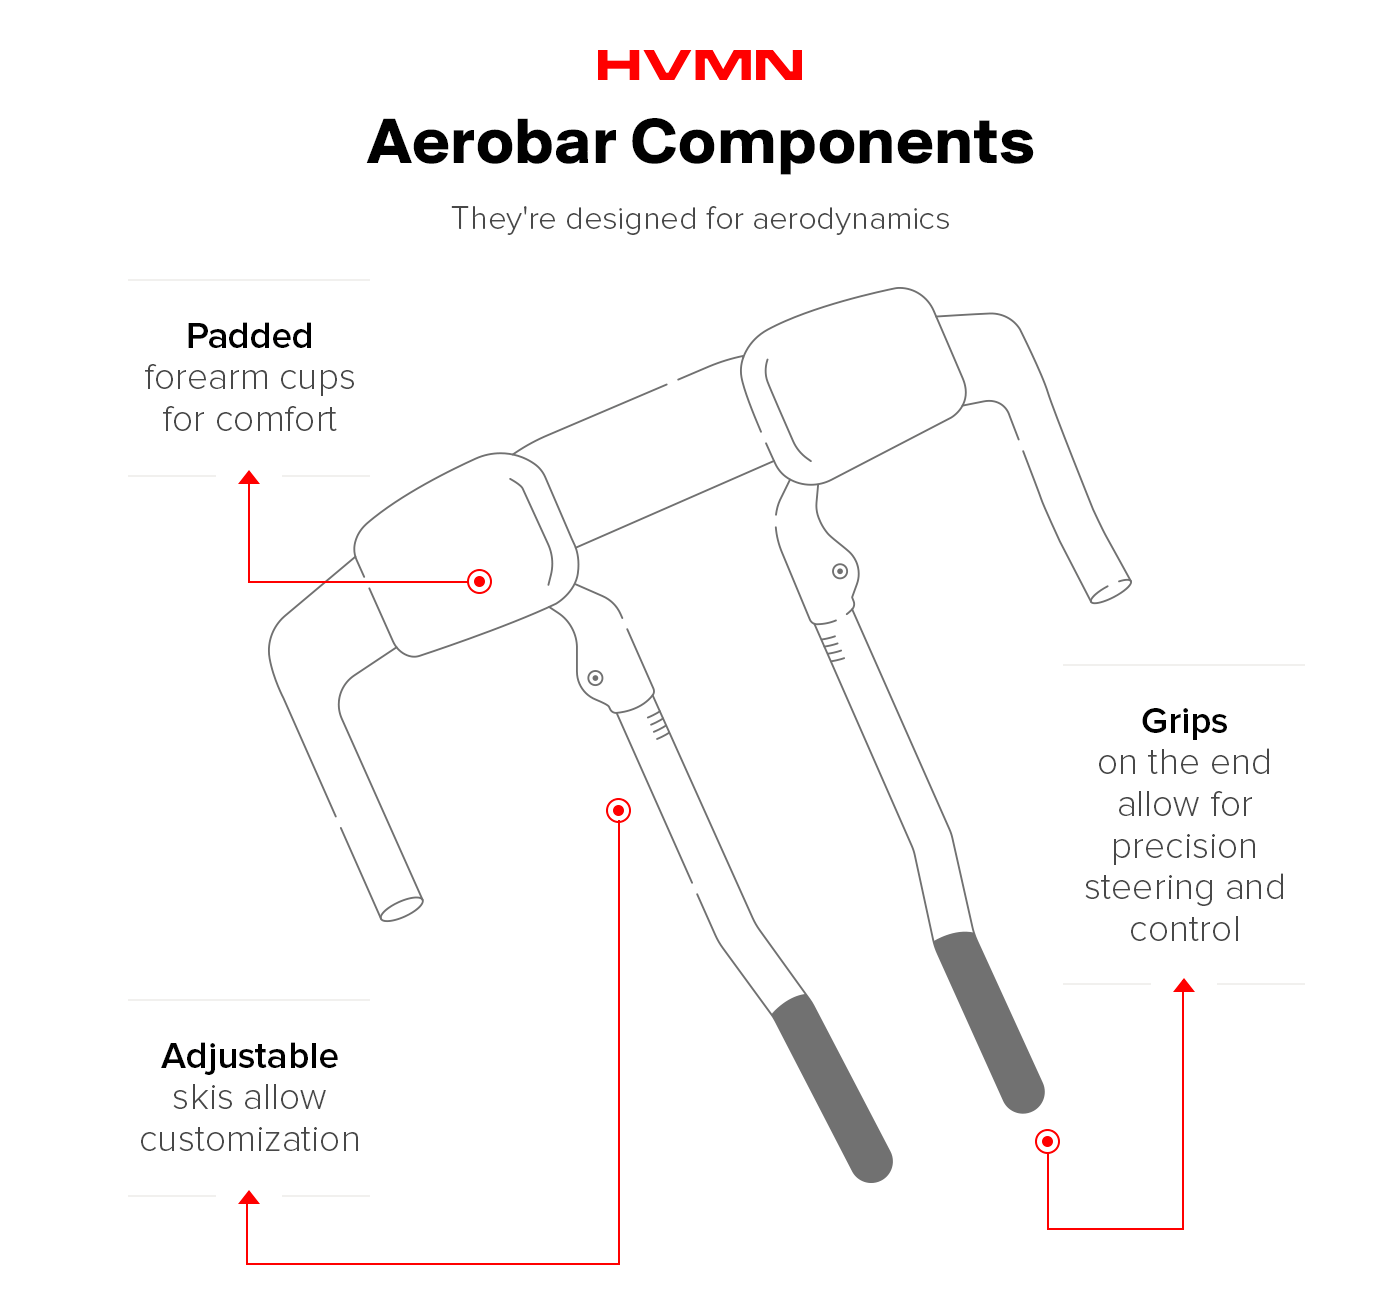 An illustration of all the different components of aerobars